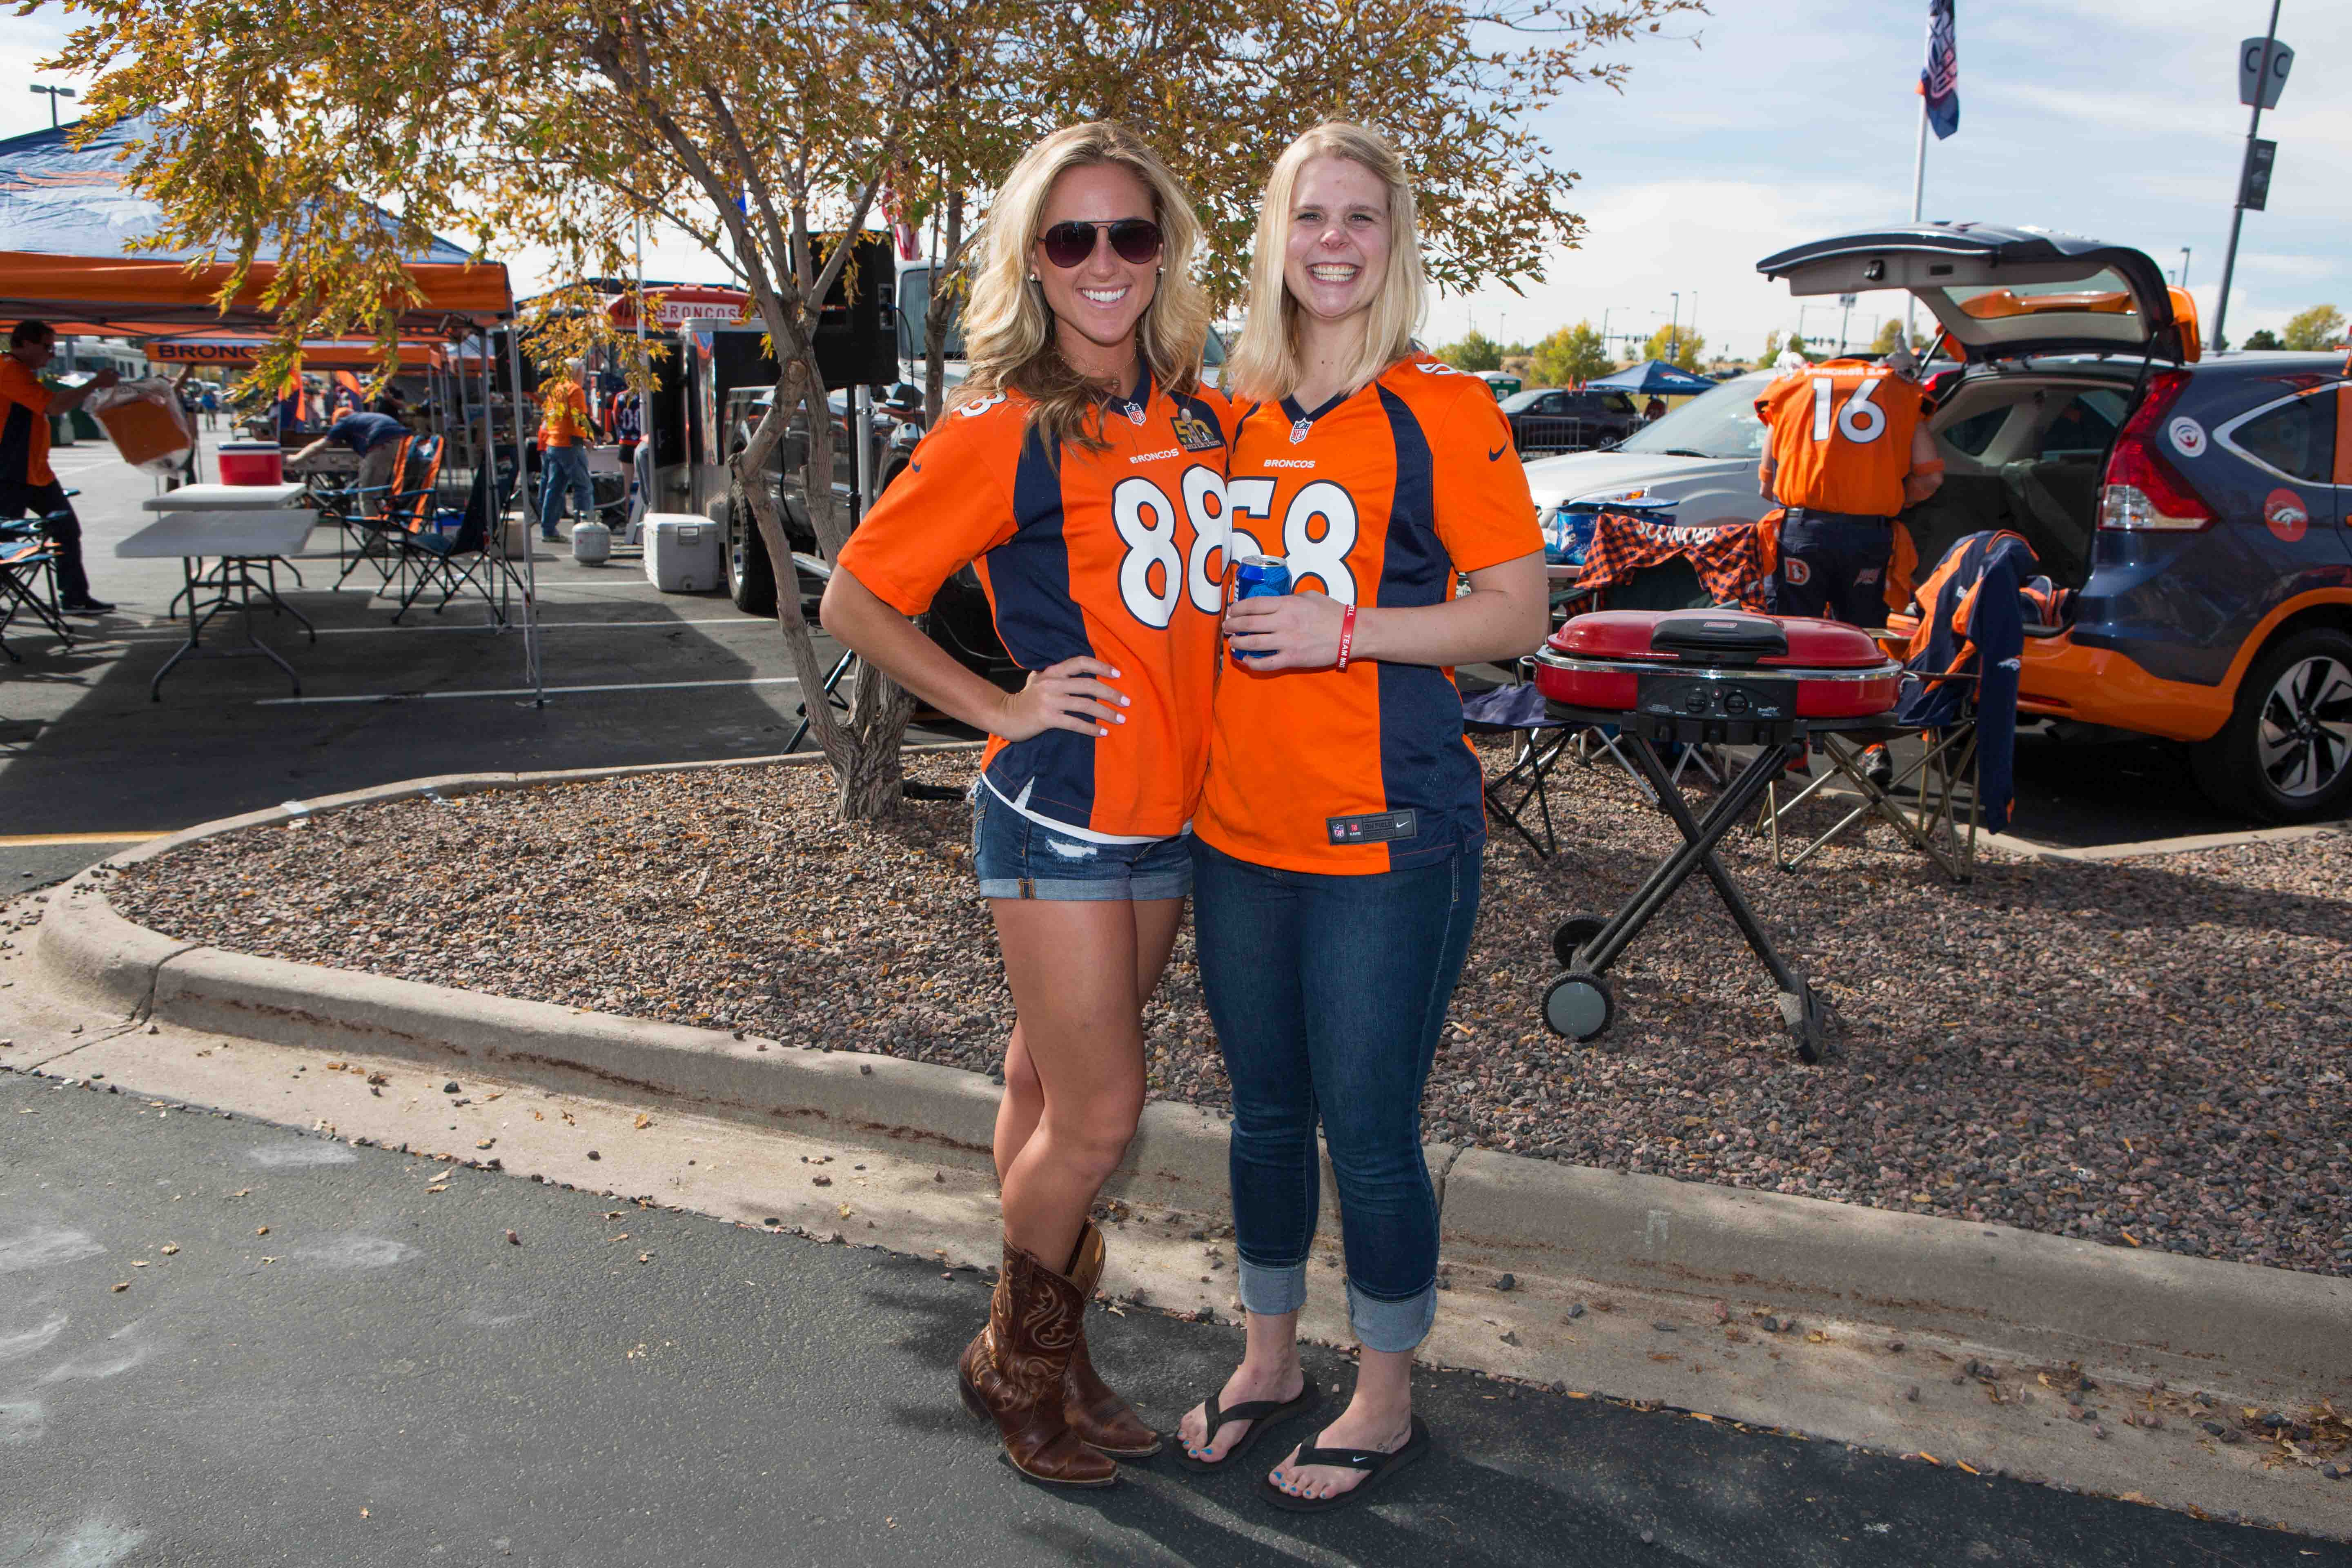 Brittany and Kristina from Denver rock the classic jersey and denim look.